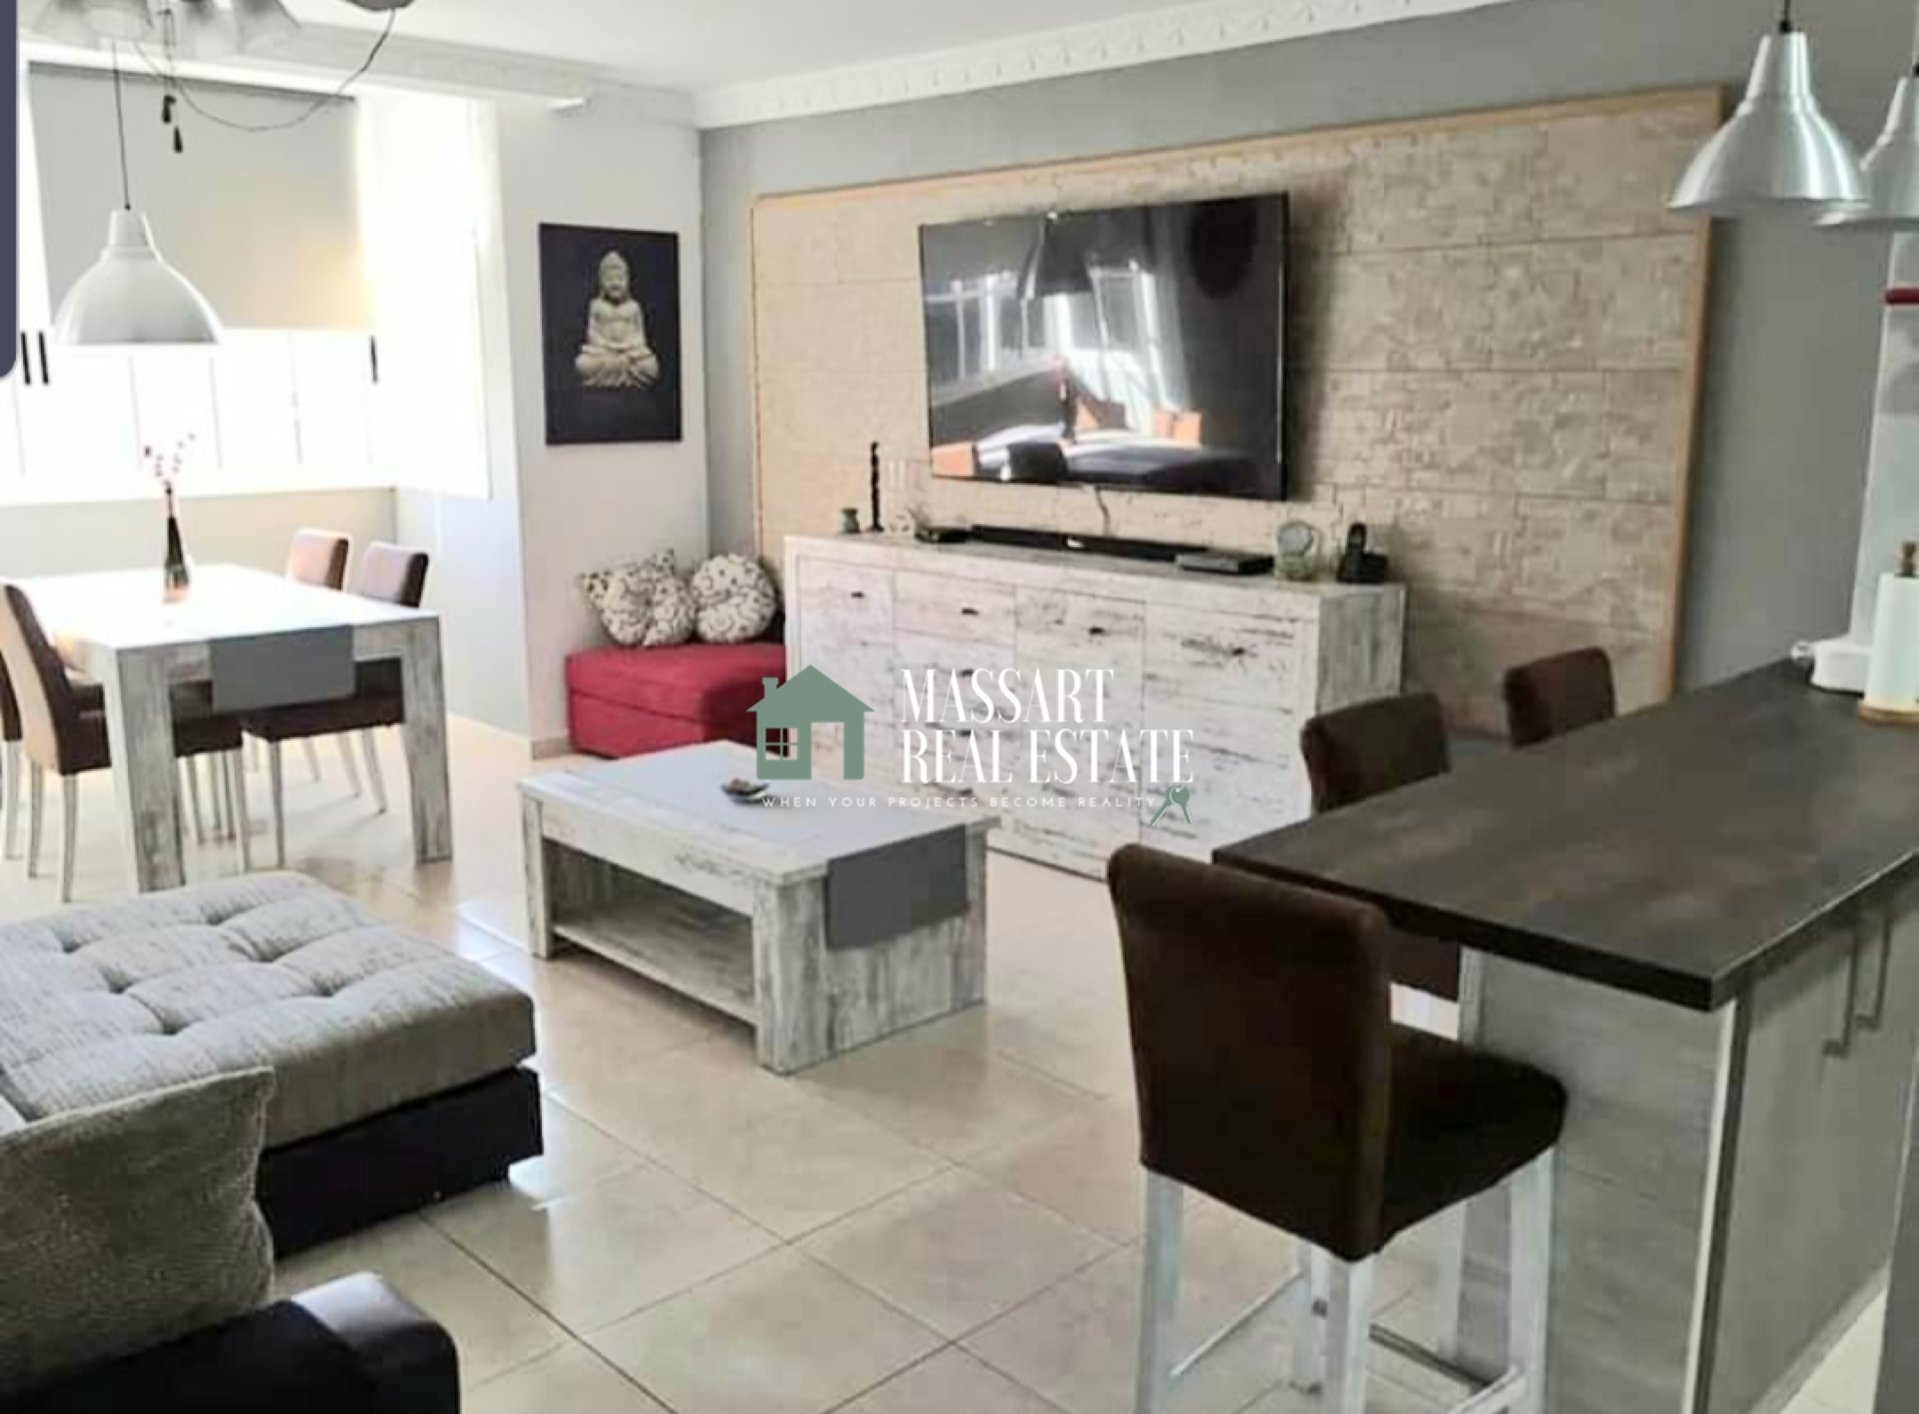 For sale in San Isidro, apartment with a strategic location